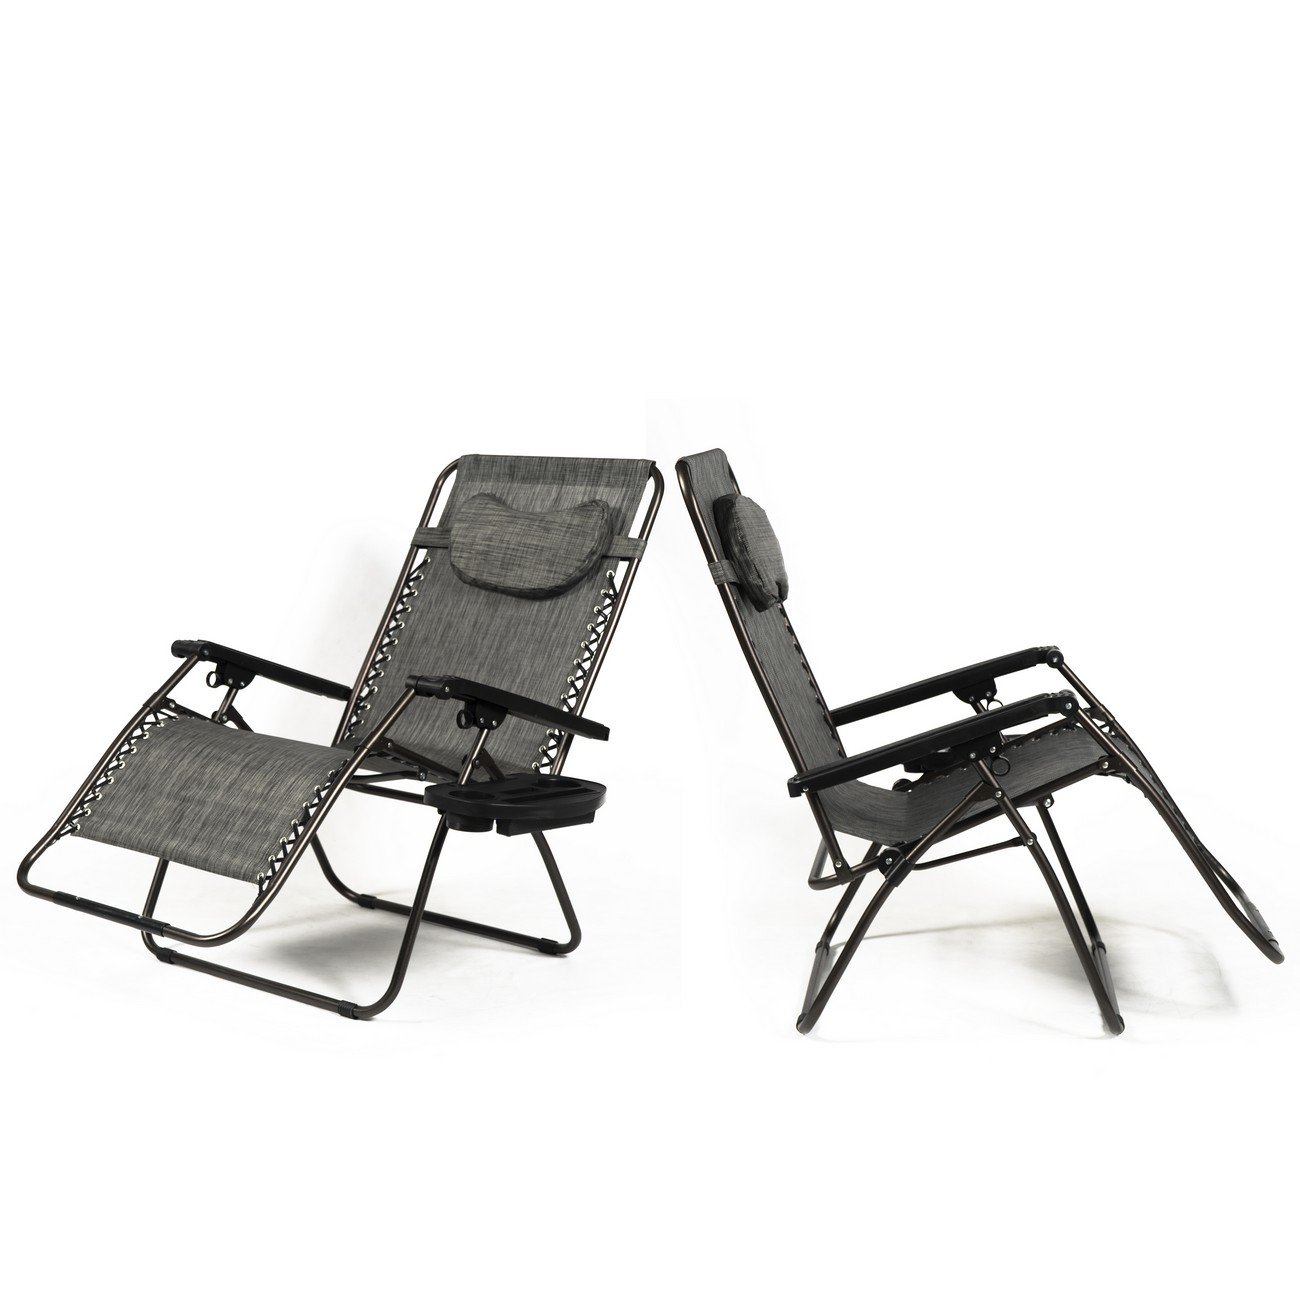 Belleze XL Oversized Zero Gravity Chairs Sets Of (2) Foldable Recliner Lounge Padded with Pillow Tray Holder, Gray